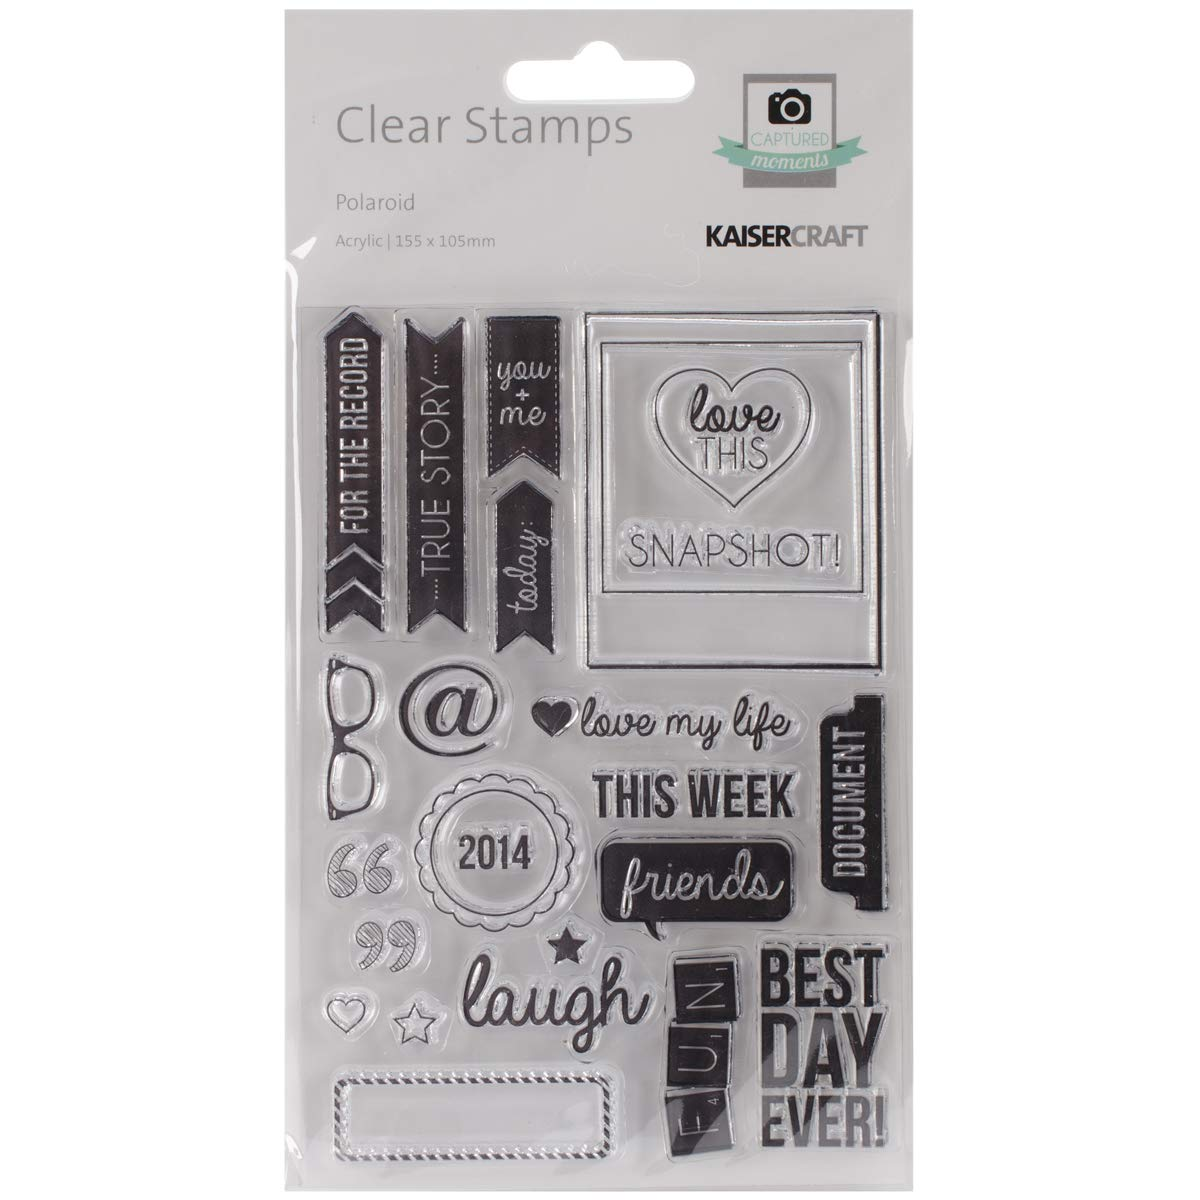 Captured Moments Collection Clear Acrylic Stamps Polaroid (8 Pack)